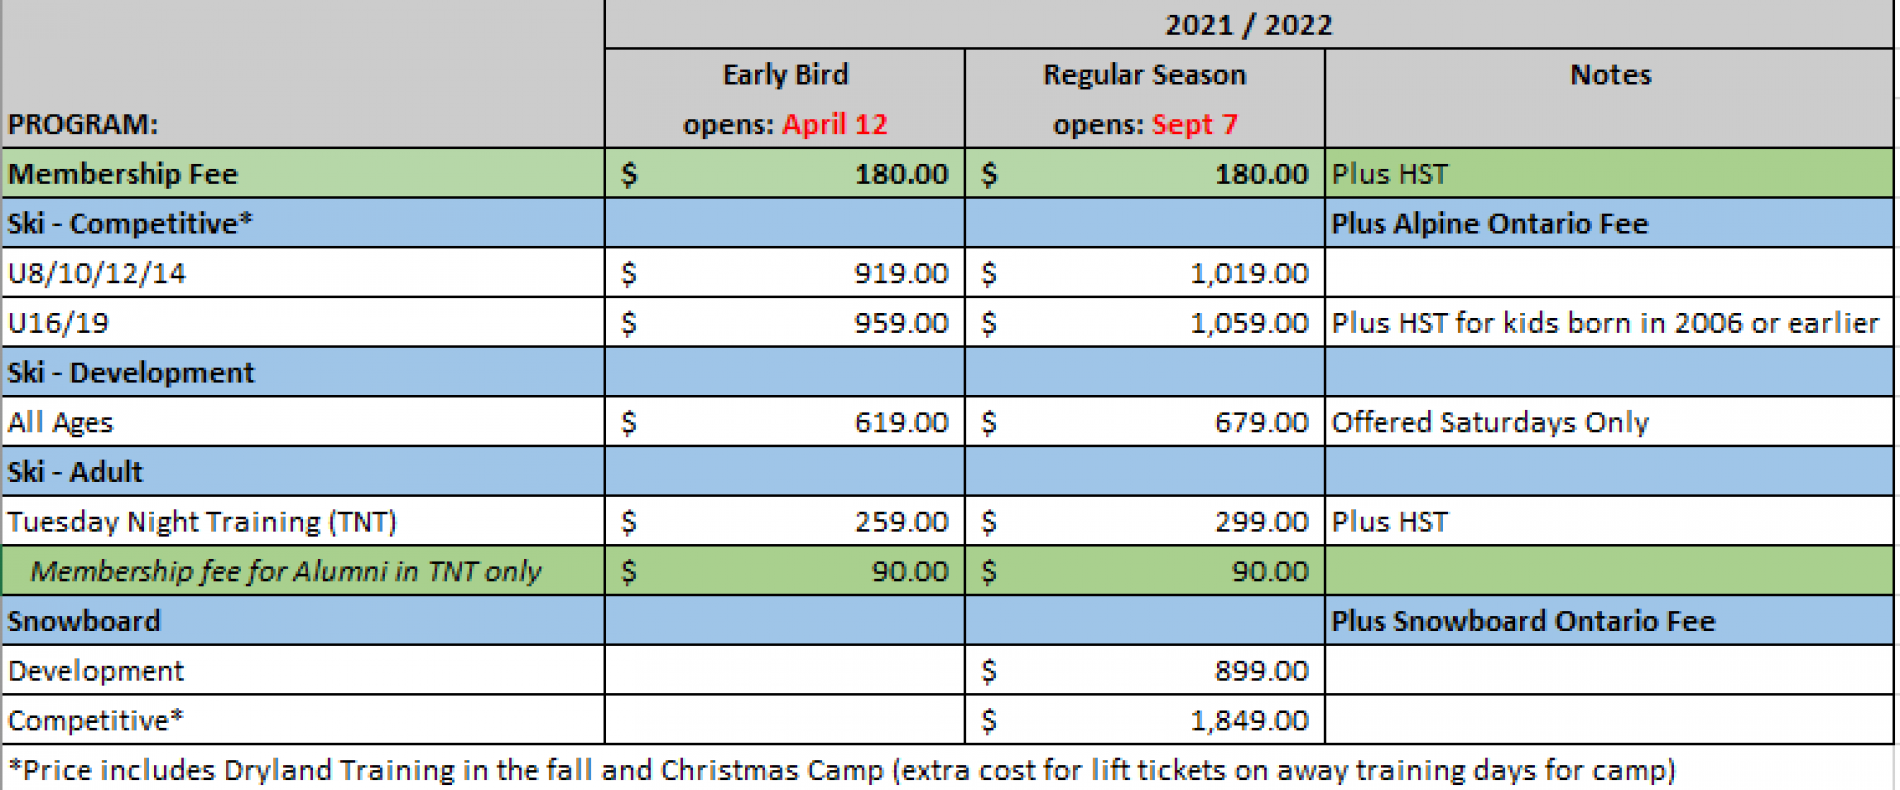 http://miltonheights.com/wp-content/uploads/2021/07/Program-Fees_July-2021-1900x790.png